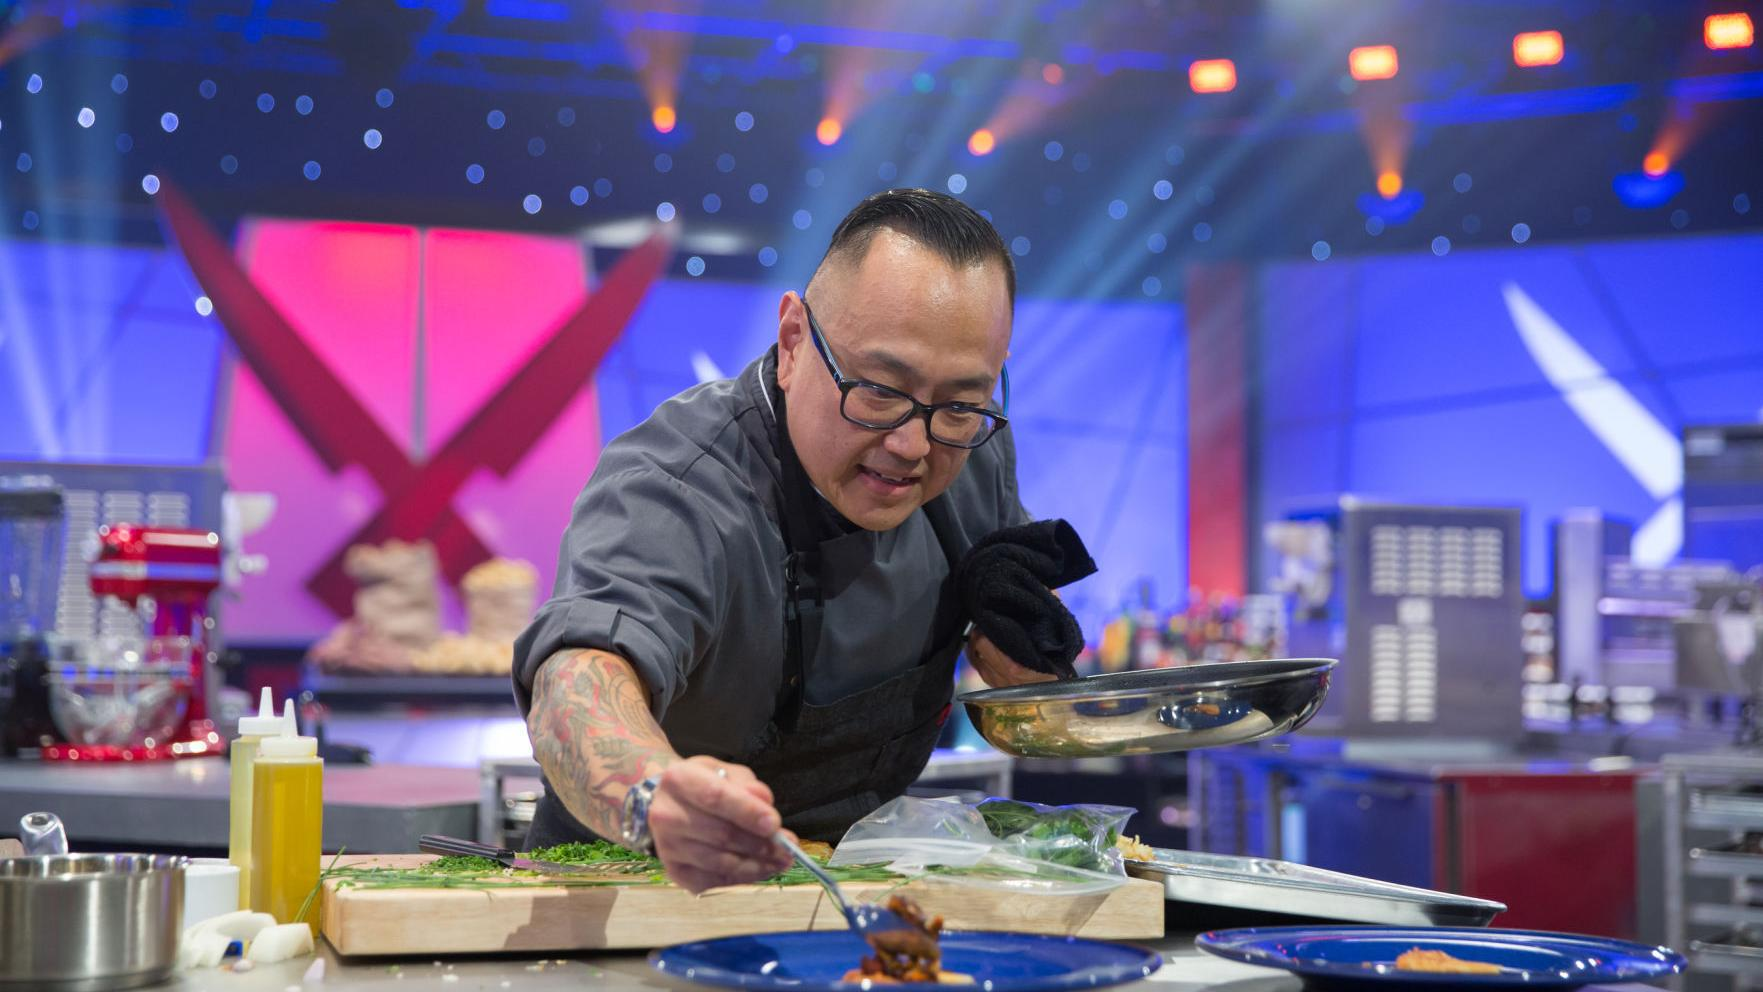 Food Network can't say when Tory Miller's 'Iron Chef Showdown' will air